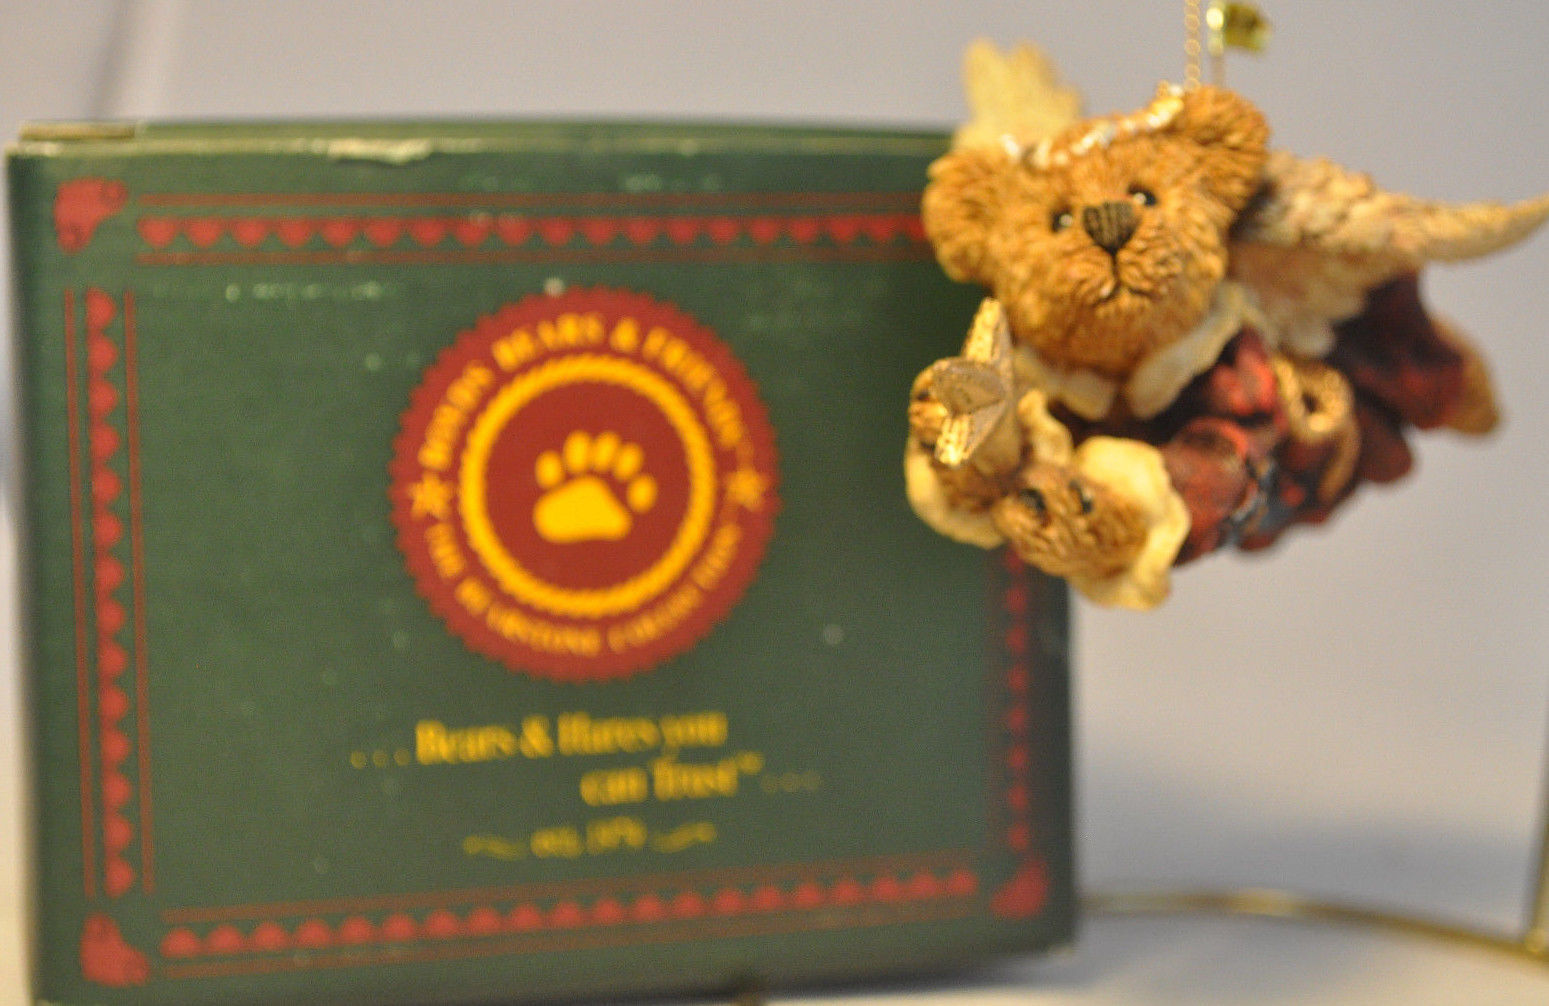 Boyds Bears & Friends: Charity ... The Angel Bear With Star - 02502 image 5